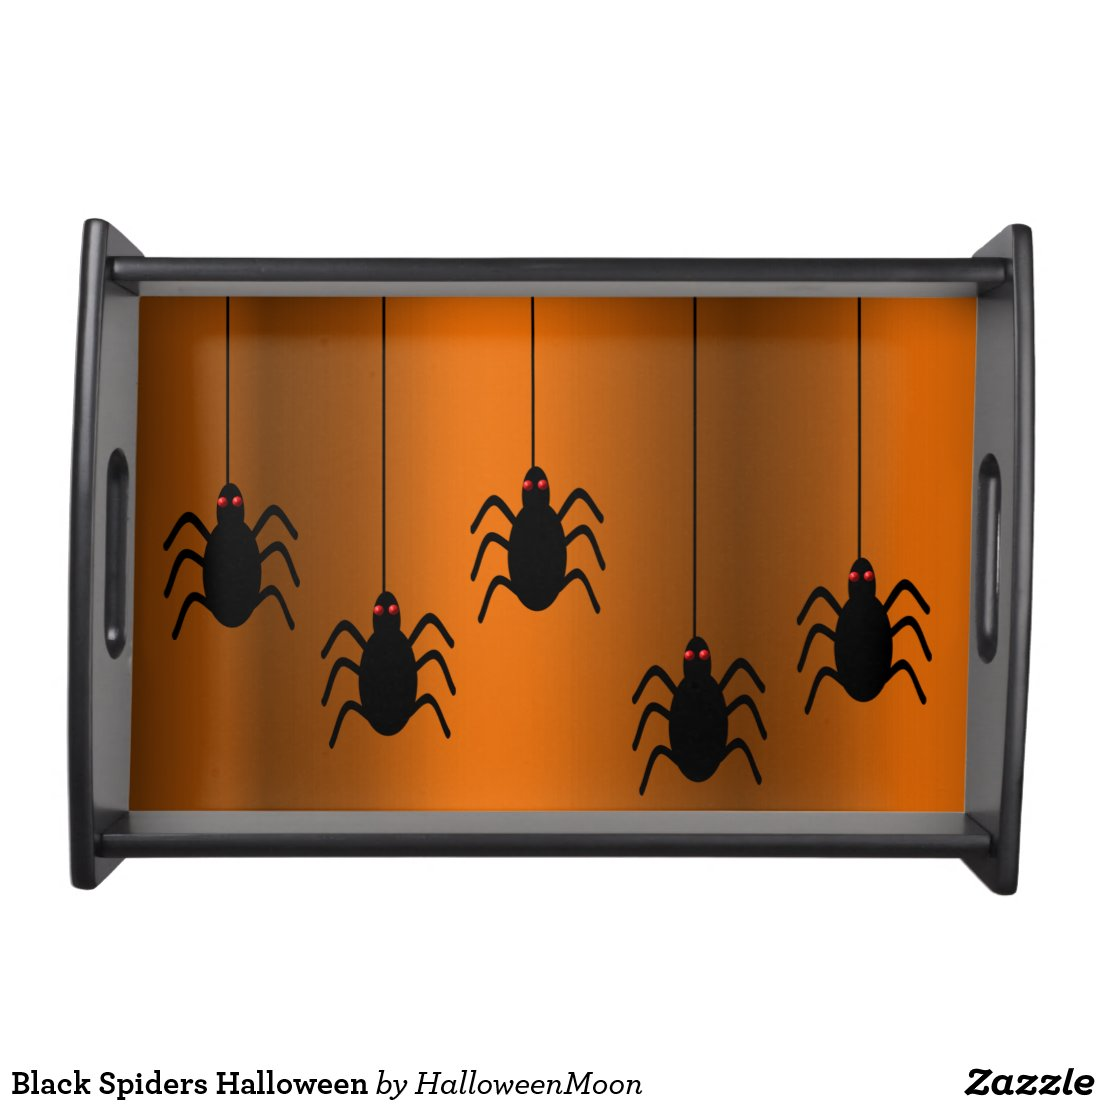 Black Spiders Halloween Serving Tray